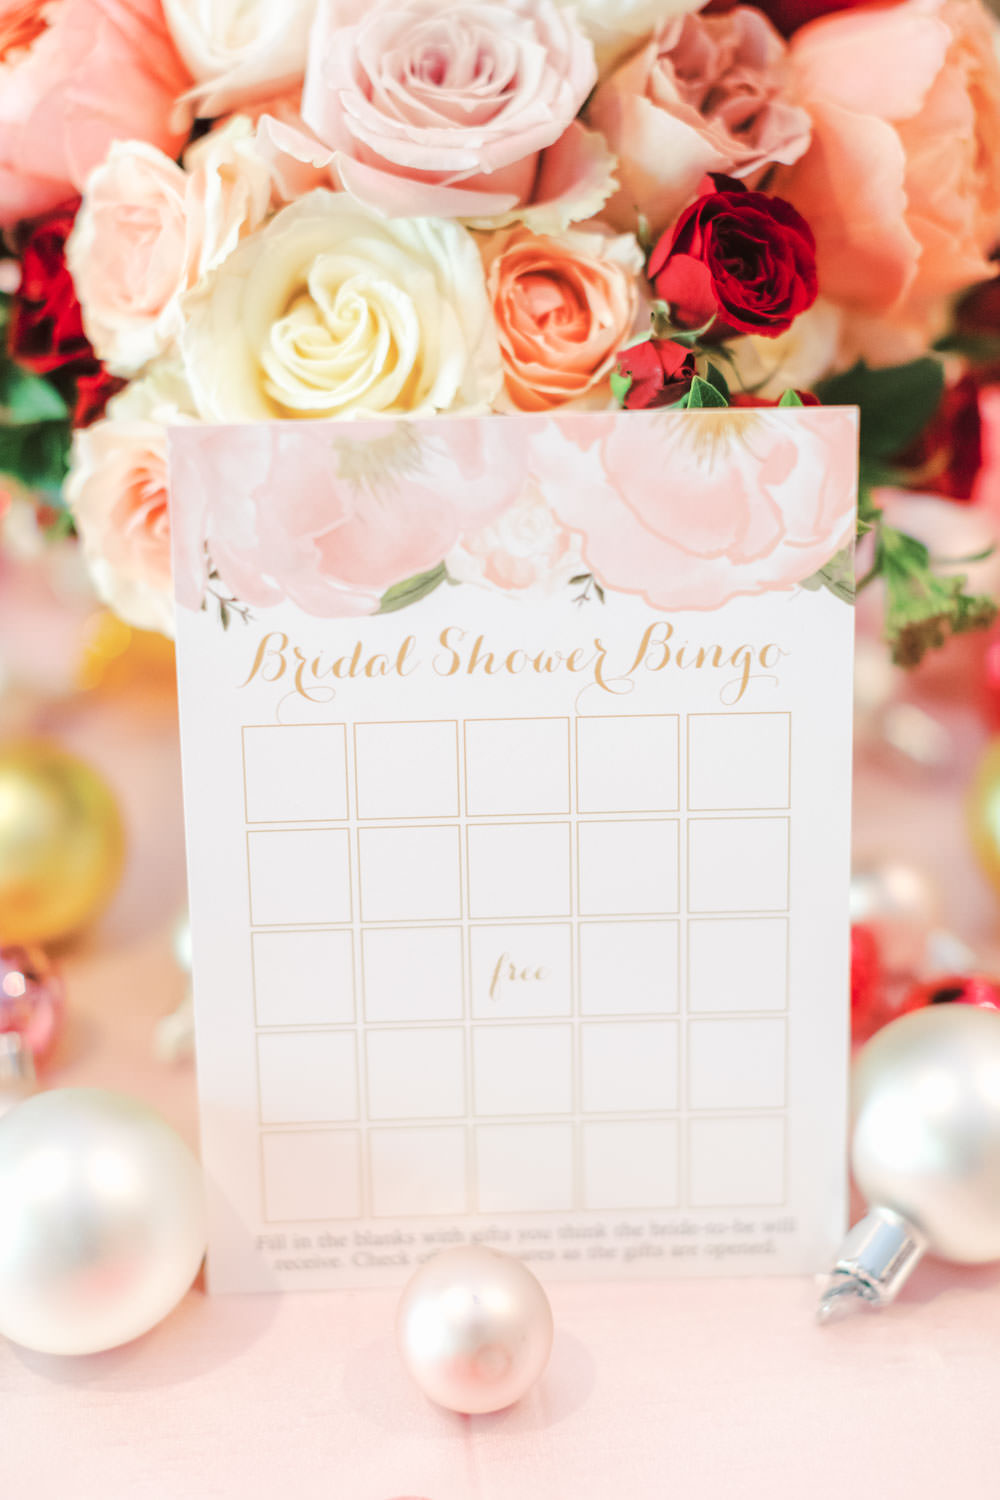 bridal shower gift bingo chic beverly hills hotel bridal shower table with pink linens and